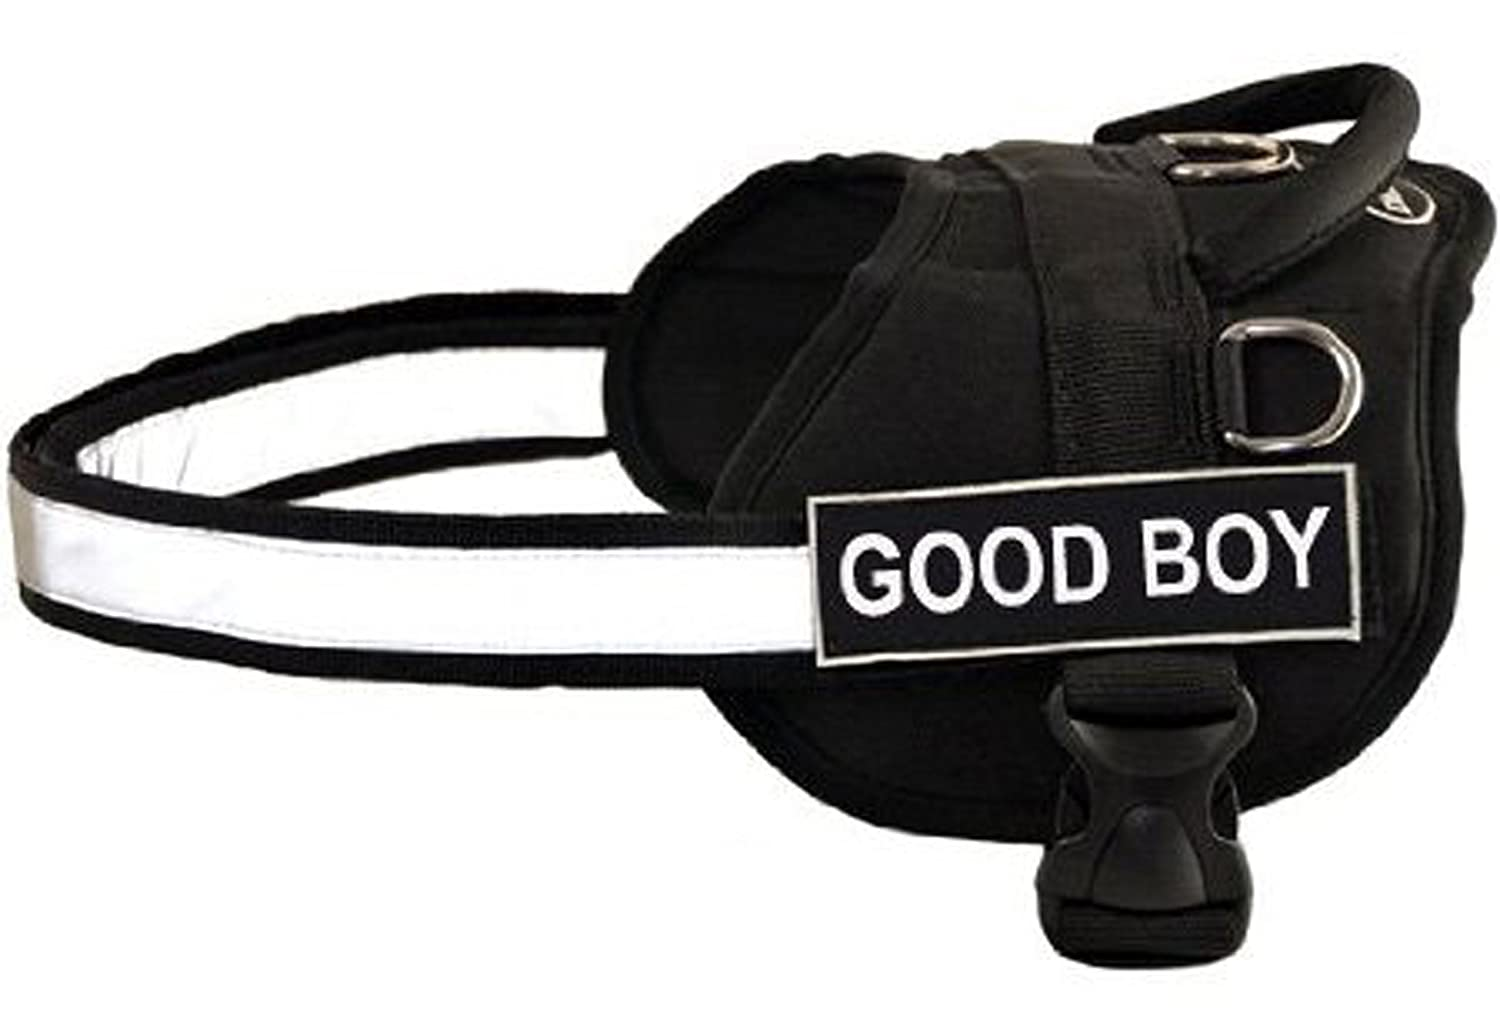 Dean & Tyler DT Works GOOD BOY Patch Harness BLK DT Works Fun Harness Good Boy, Black White, X-Small-Fits Girth Size  53cm to 66cm